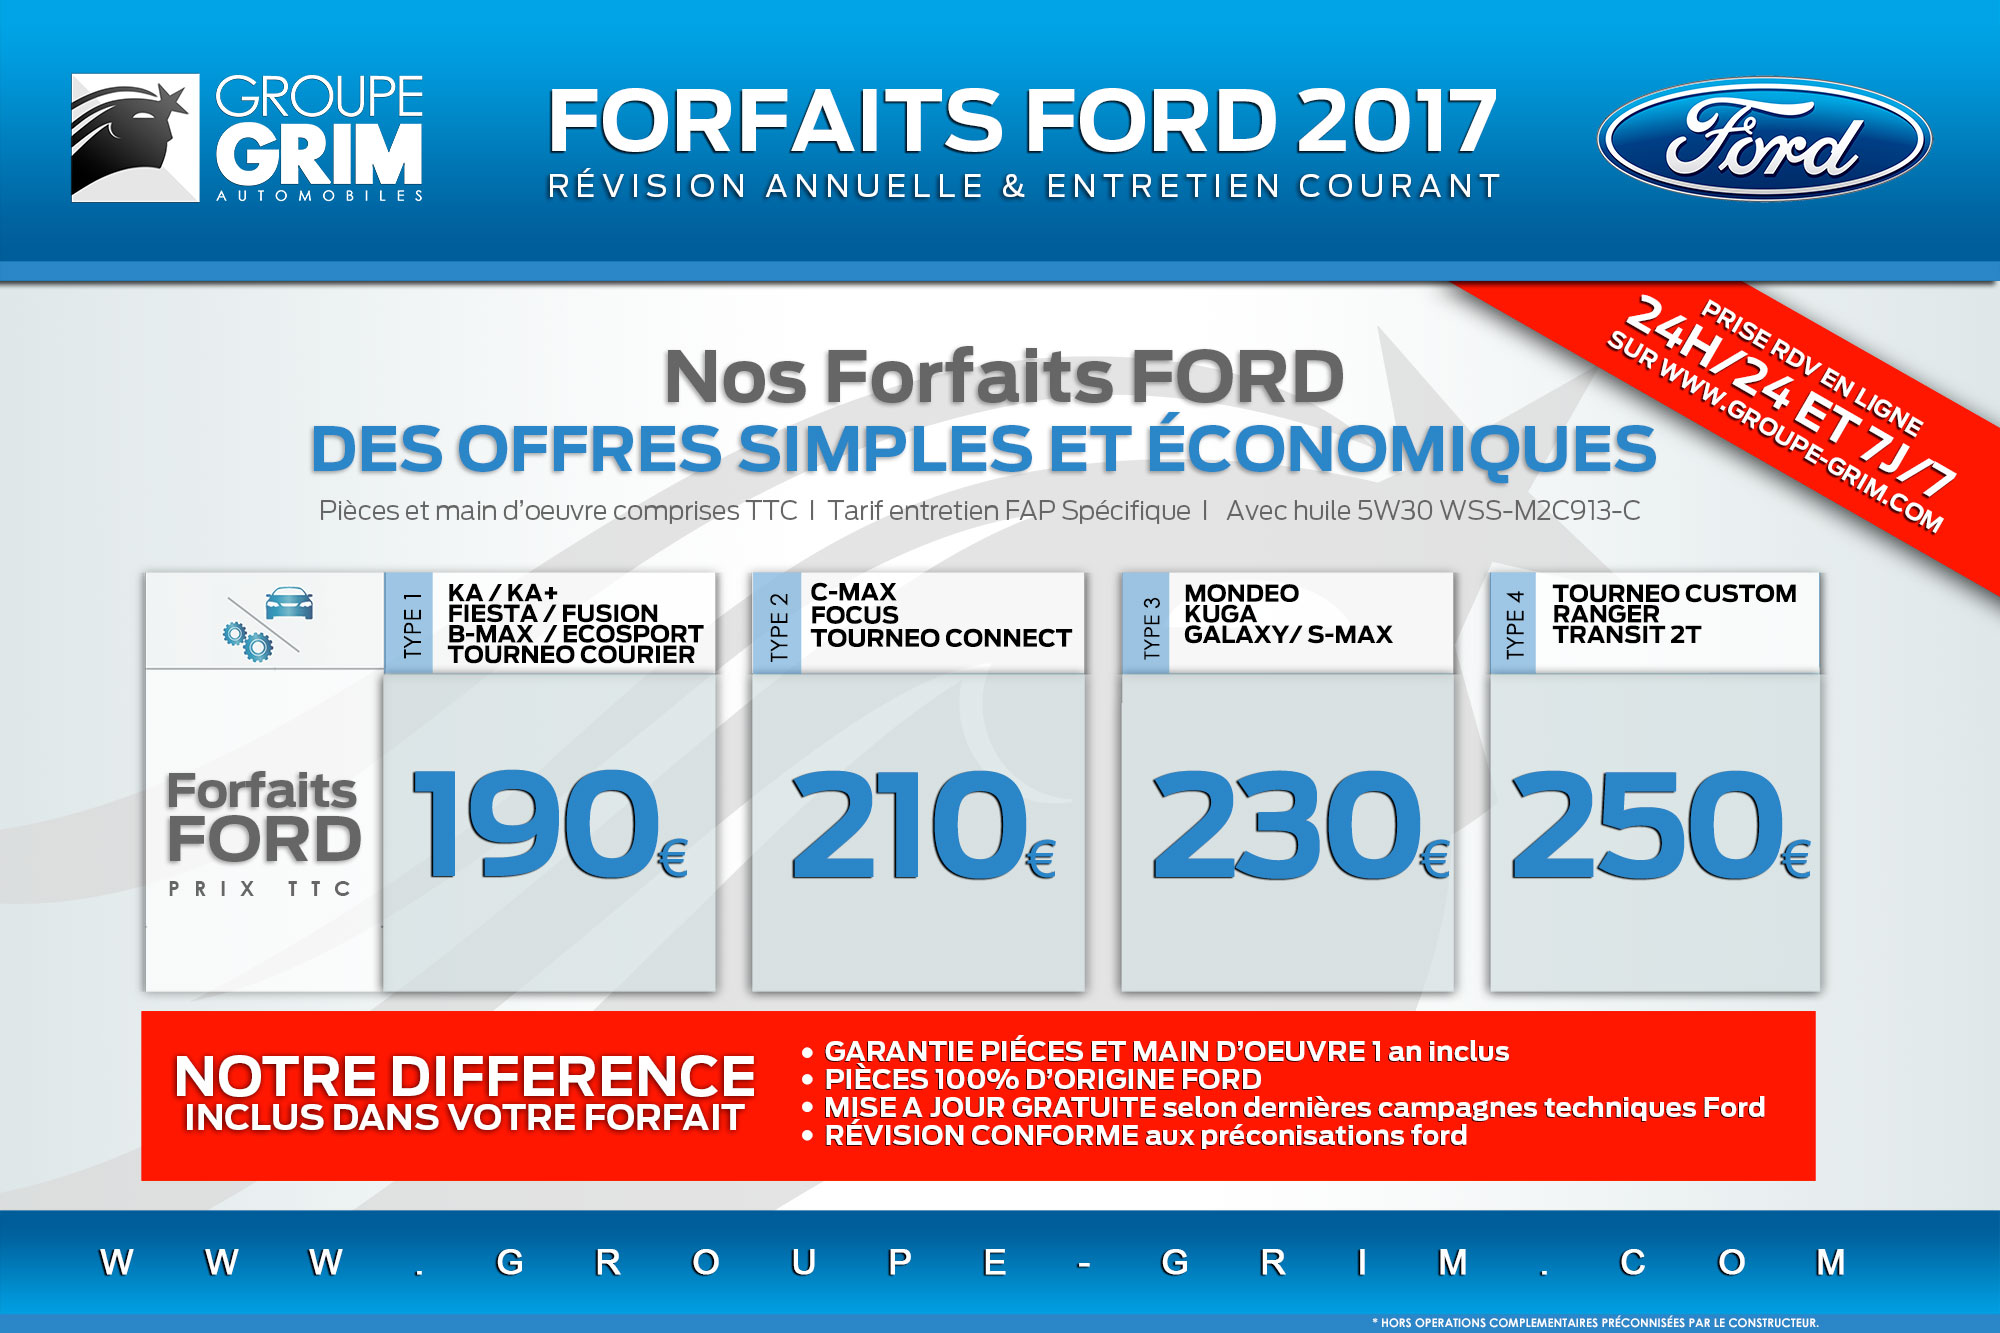 Forfaits ford 2017-Tarif-Revision-2017